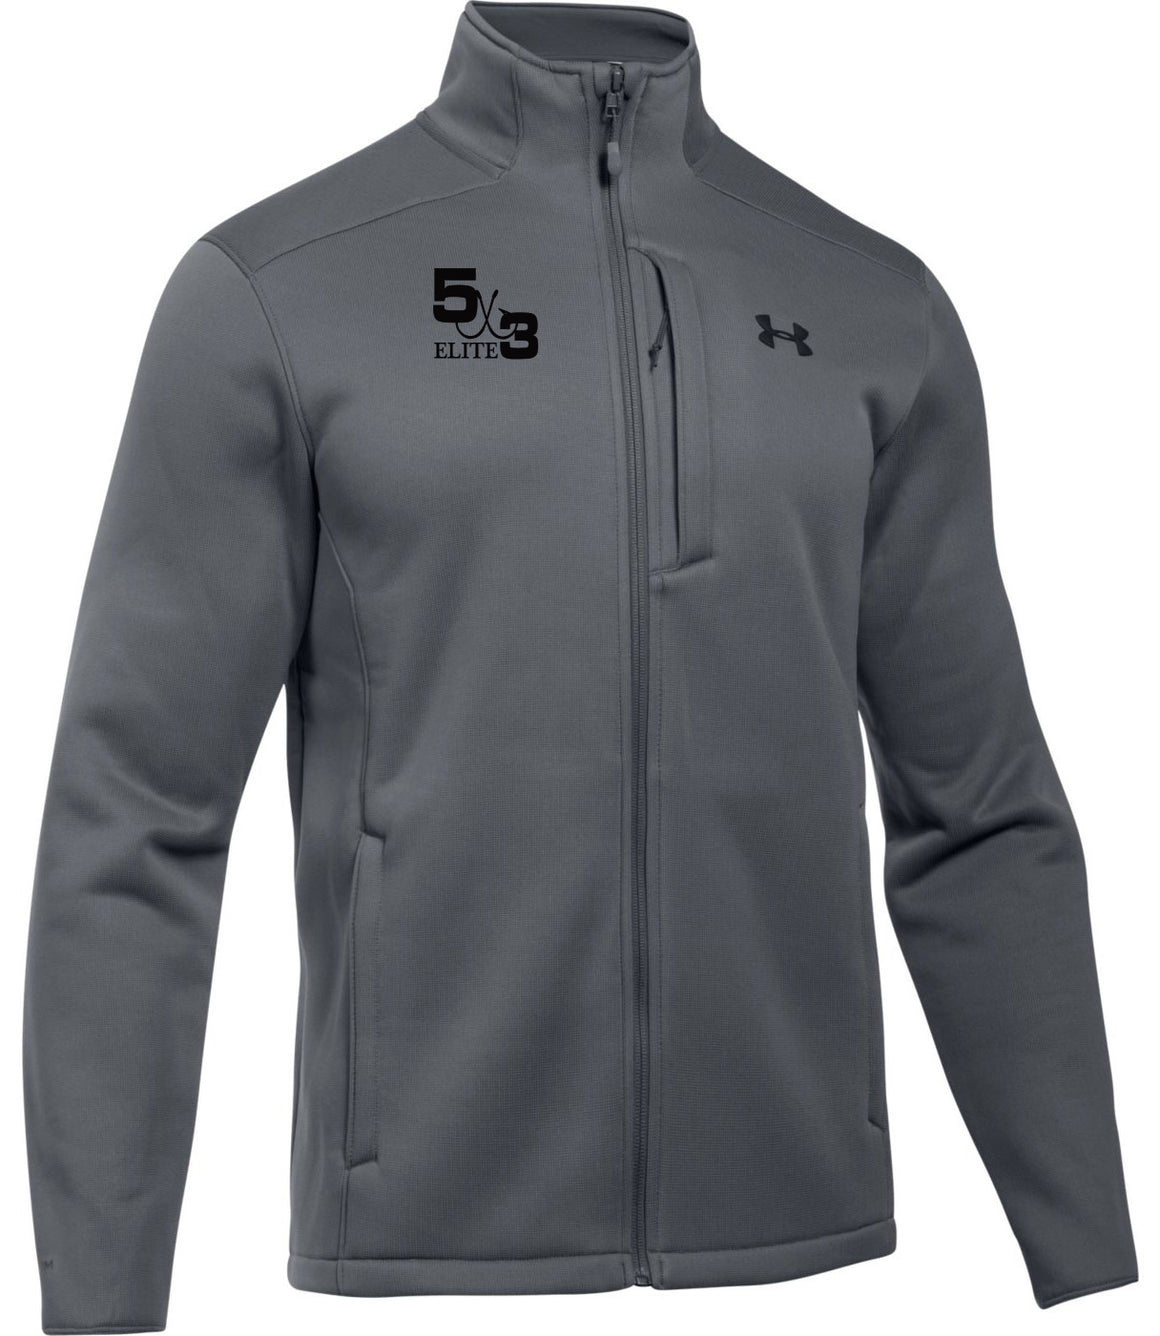 5X3 Under Armour Jacket.(preorder)